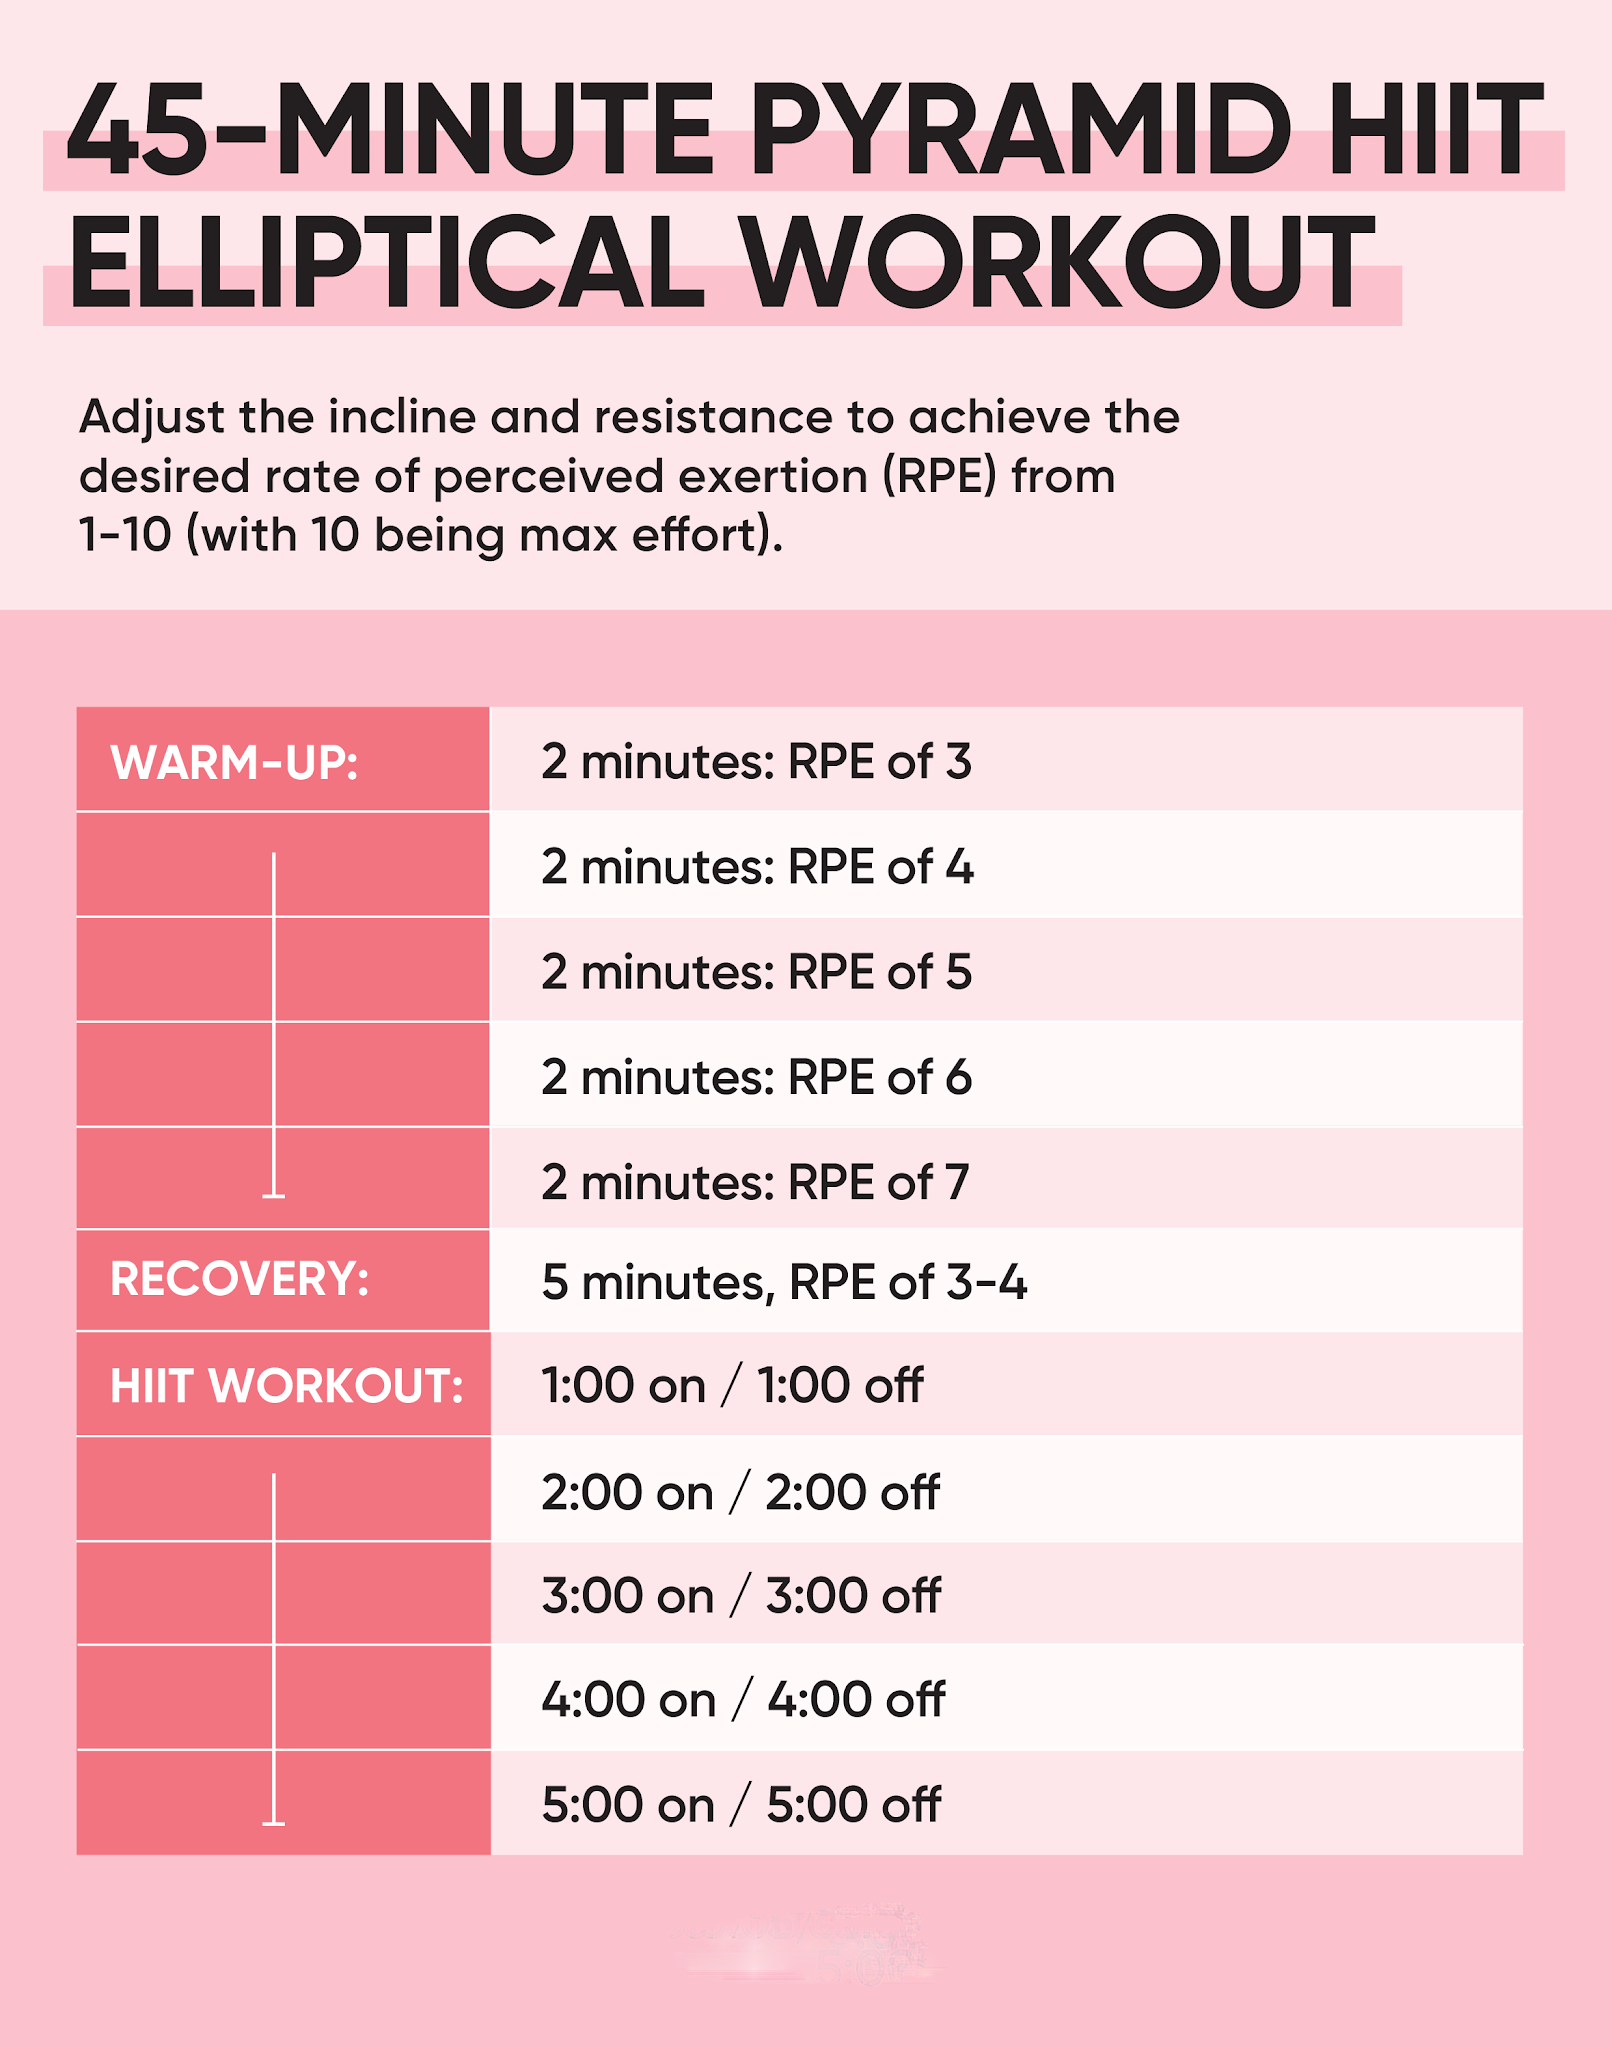 45-Minute Pyramid Elliptical HIIT Workout